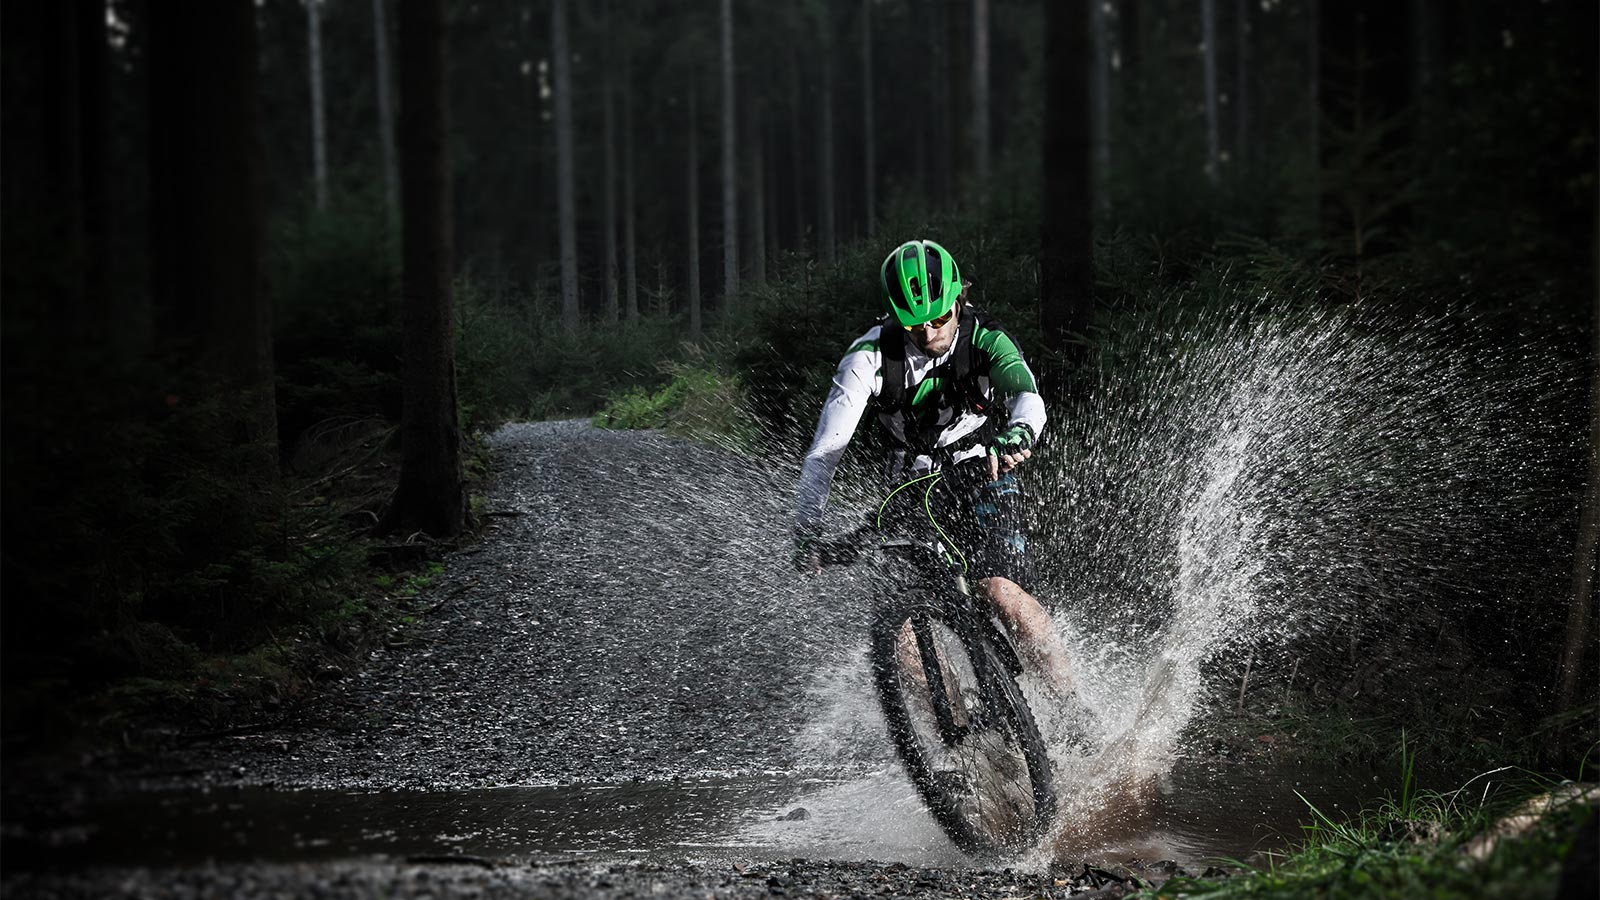 A cyclist passes over a stream with his mtb